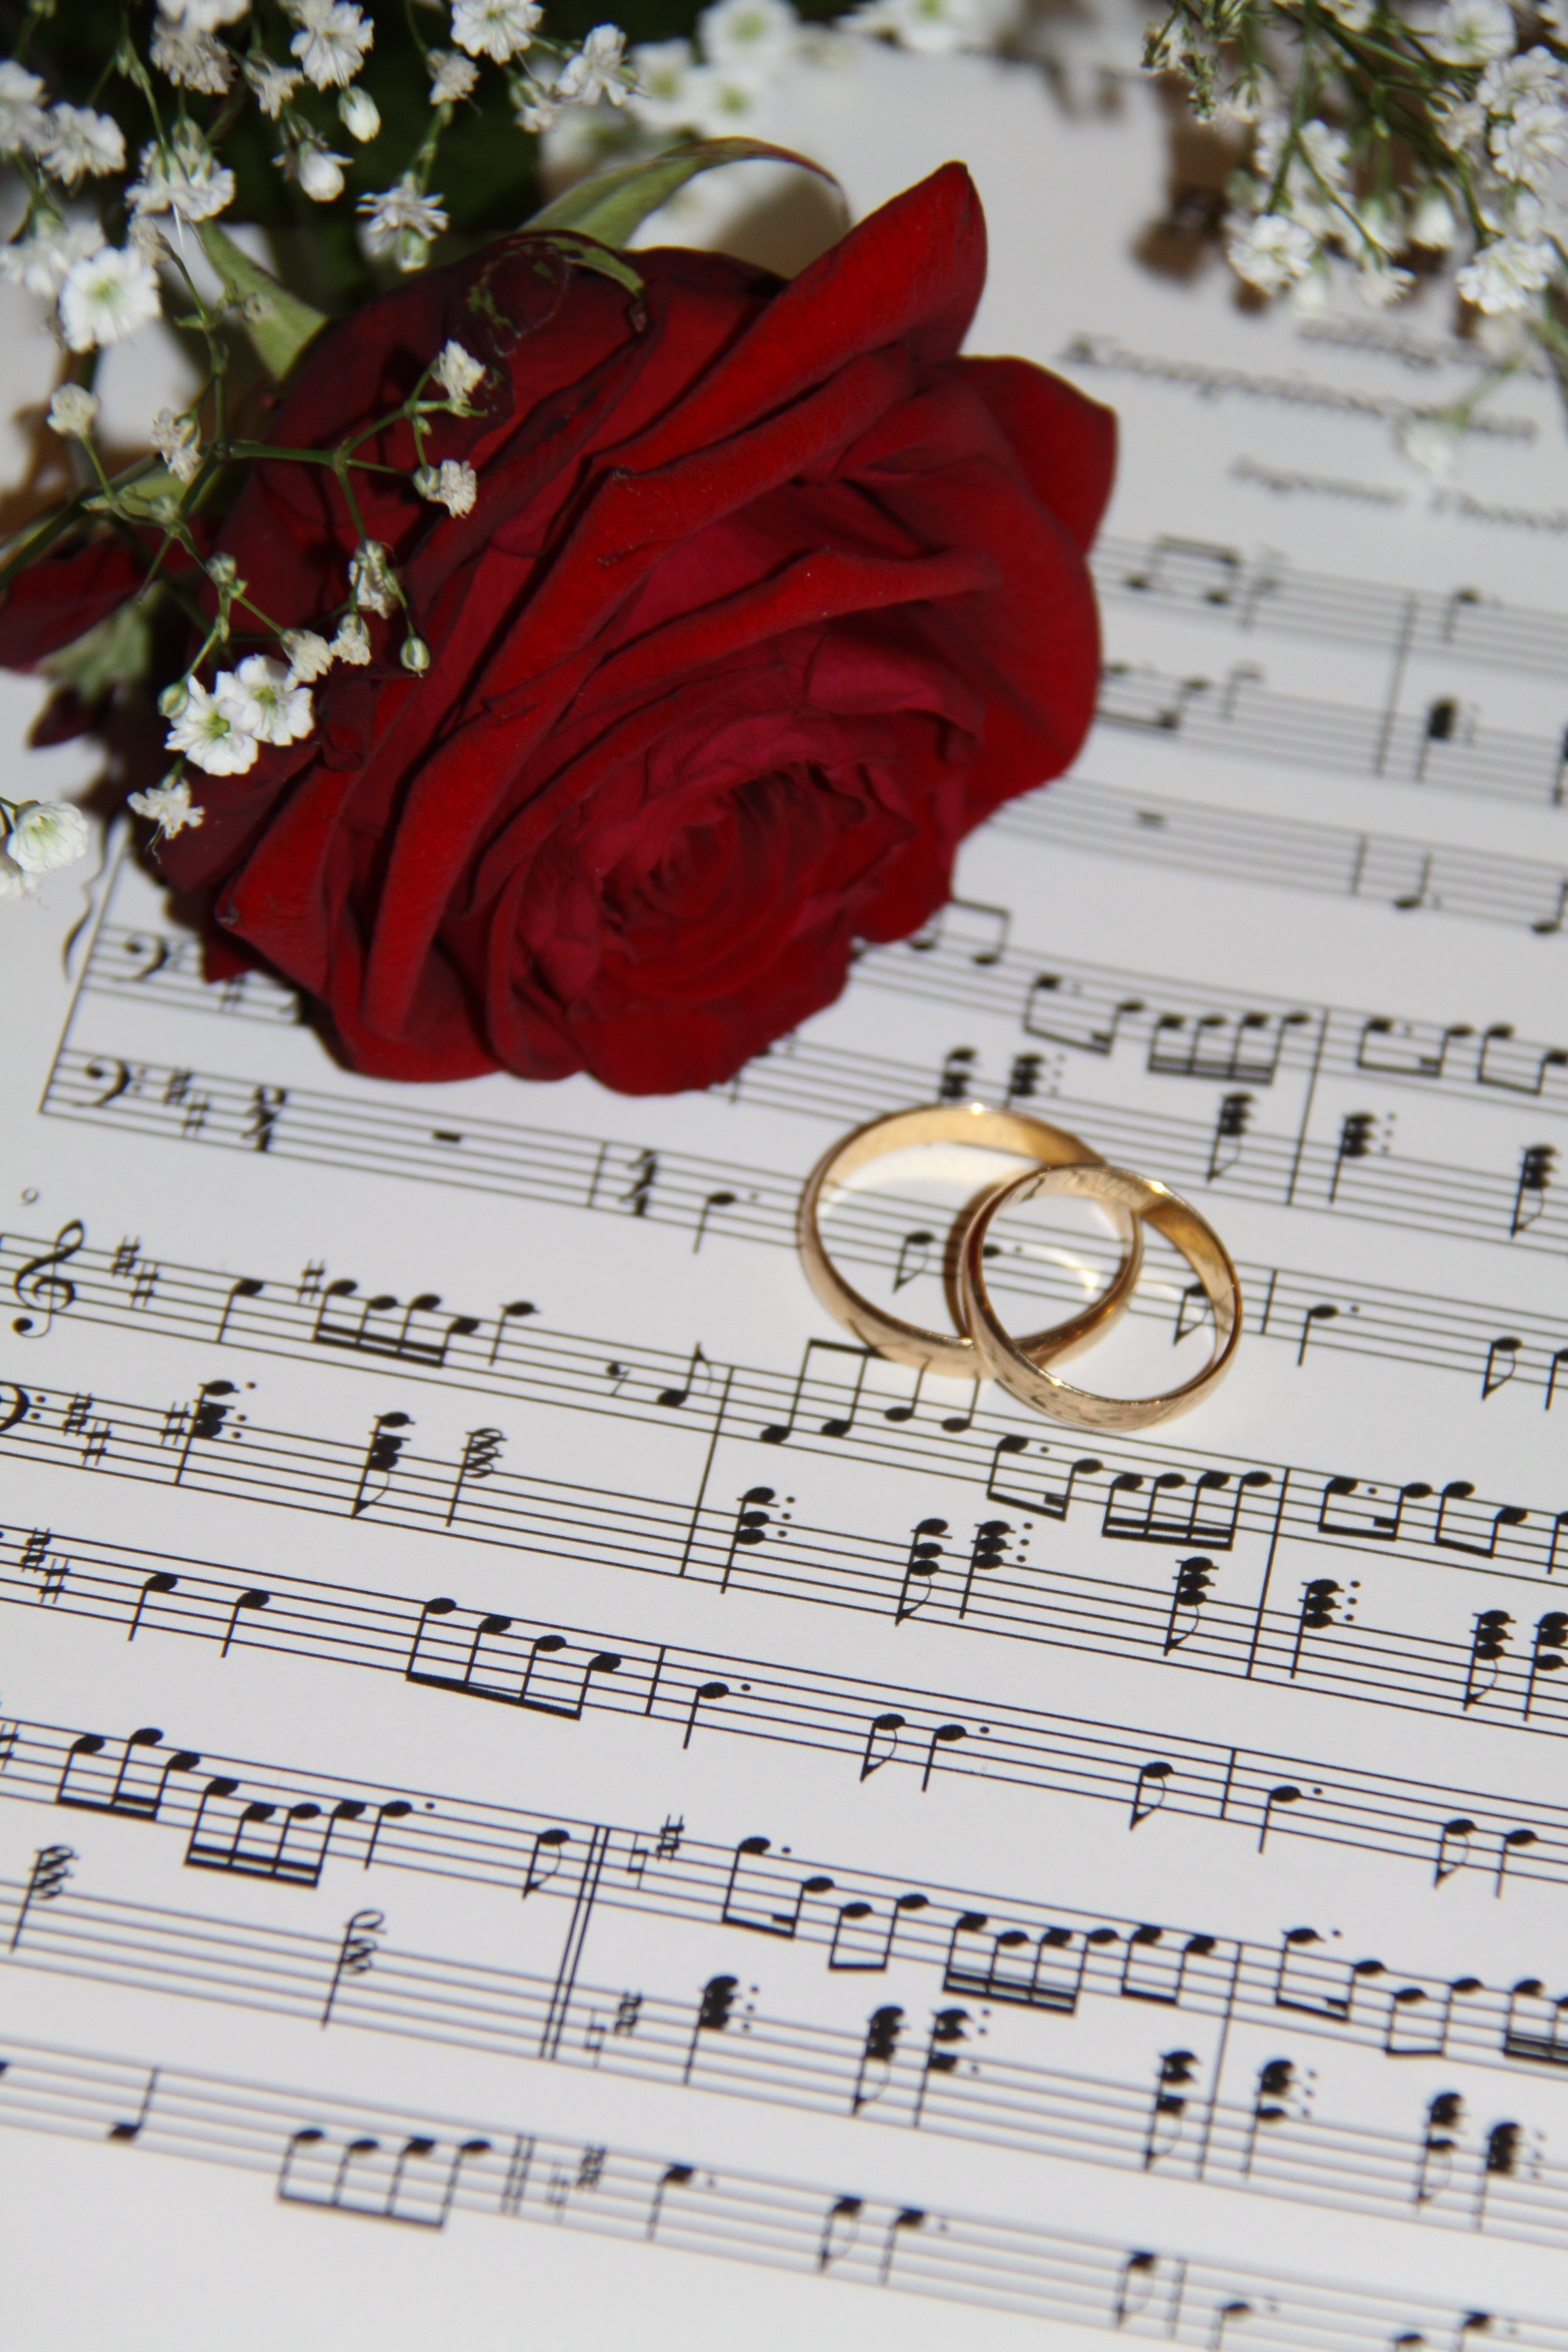 The Top 10 Songs To Avoid At Weddings